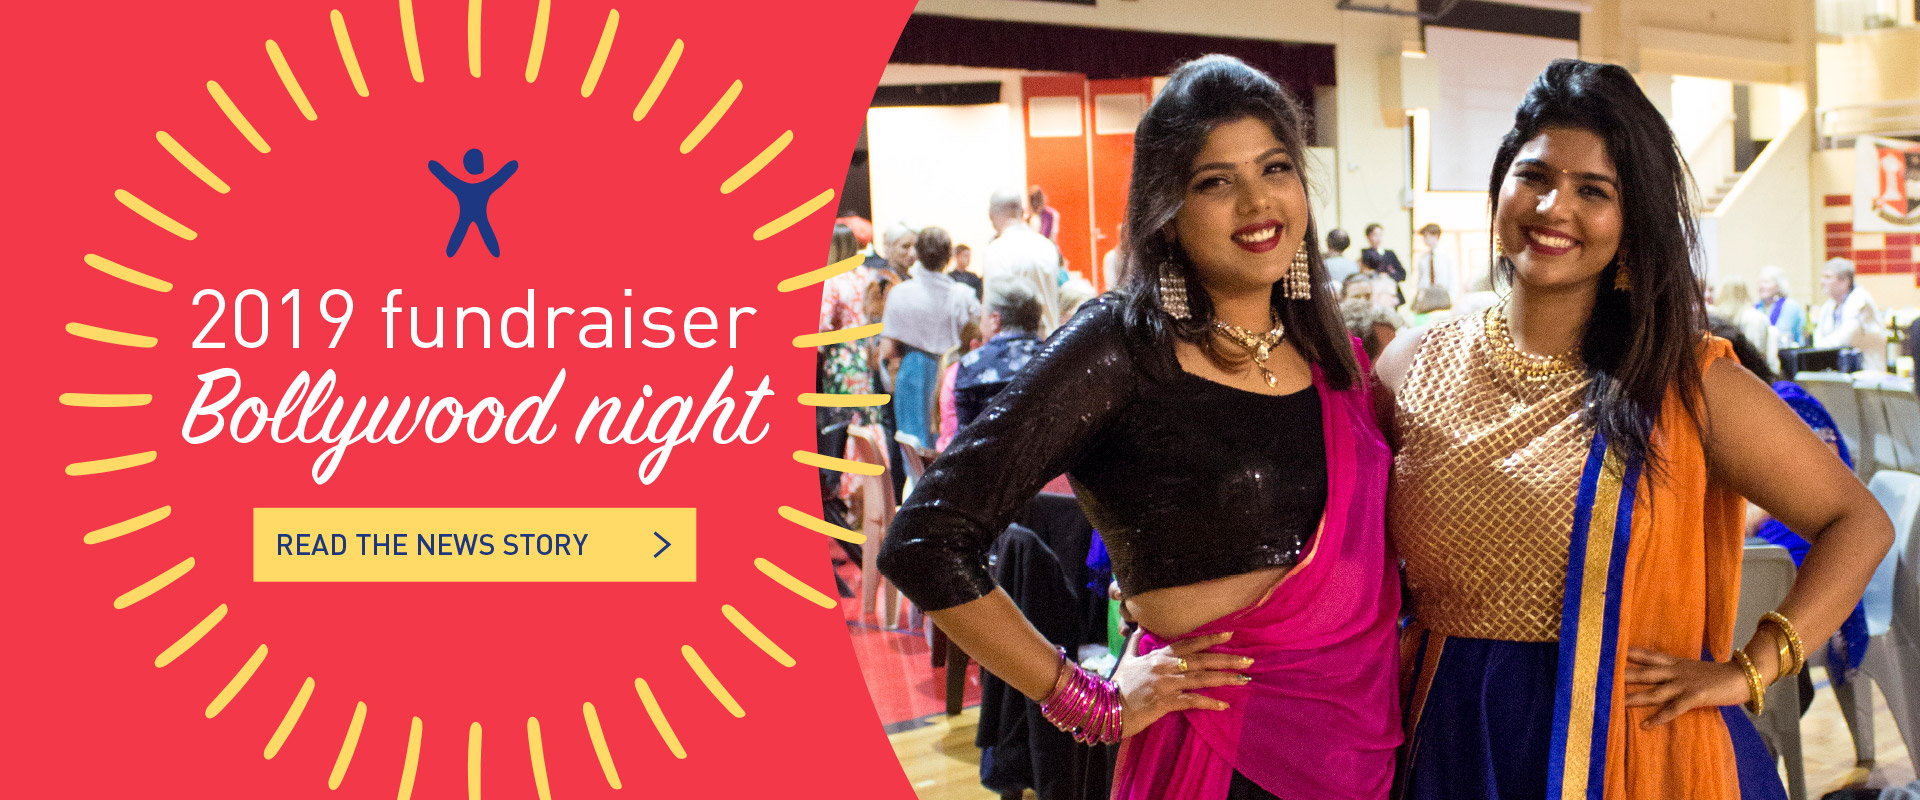 2019 Fundraiser - Bollywood Night - Read the news story